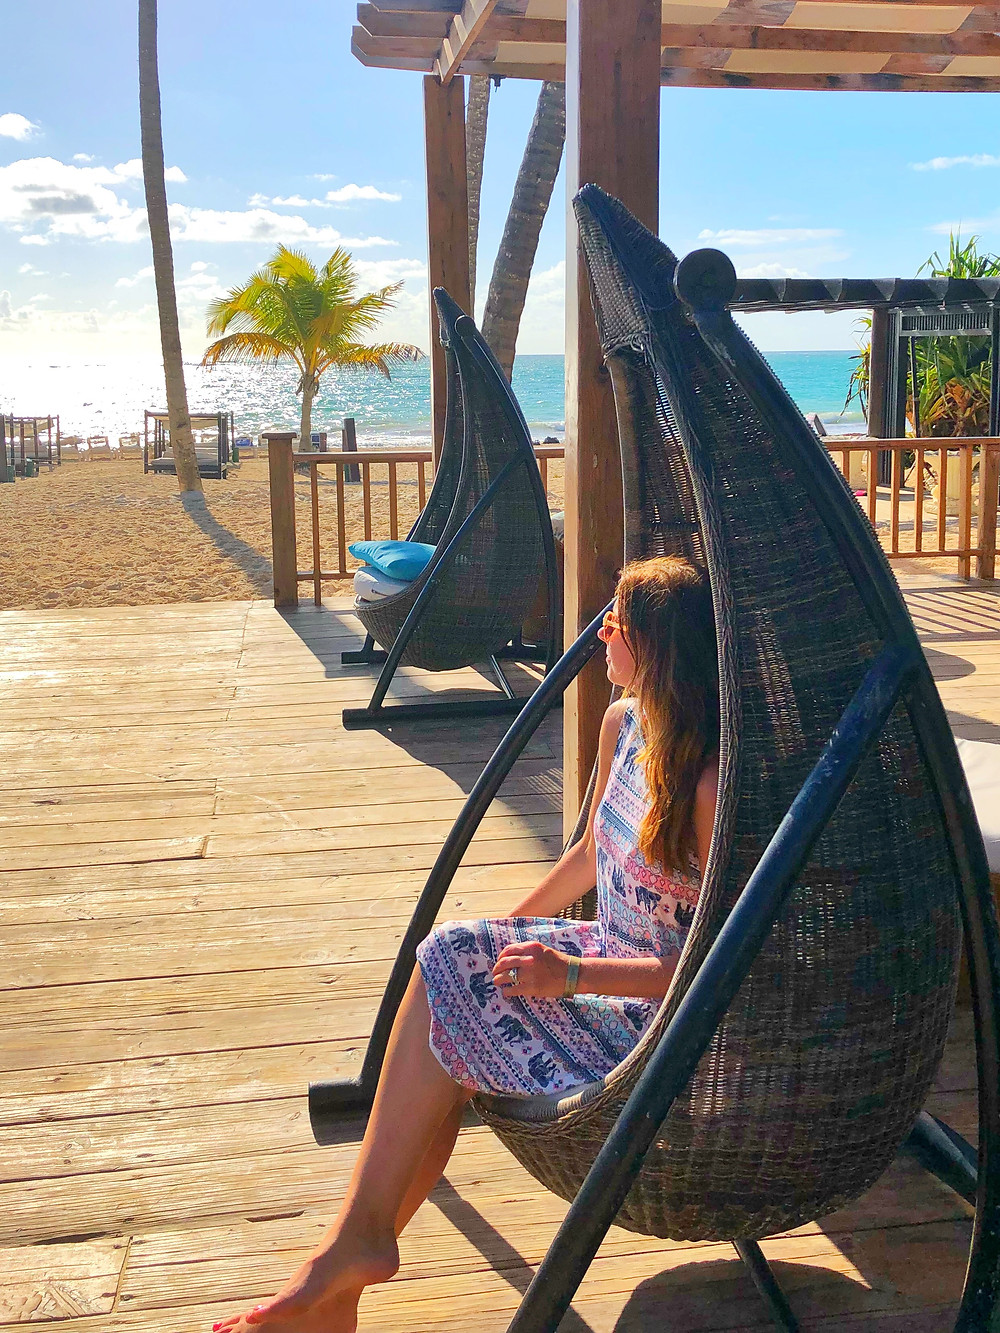 [Image description:] Leah Little sits in a teardrop-shaped chair on a wooden deck at the Punta Cana Princess, a resort in the Dominican Republic. She is a young white woman with light brown hair glowing yellow under the sun. She's wearing a dress with stripes and elephants; it is pink and varying shades of blue on a white material. She is wearing sunglasses. Behind her is a sandy beach with bright blue waters under a clear sky. A few palm trees speckle the background amongst the cabanas on the sand.